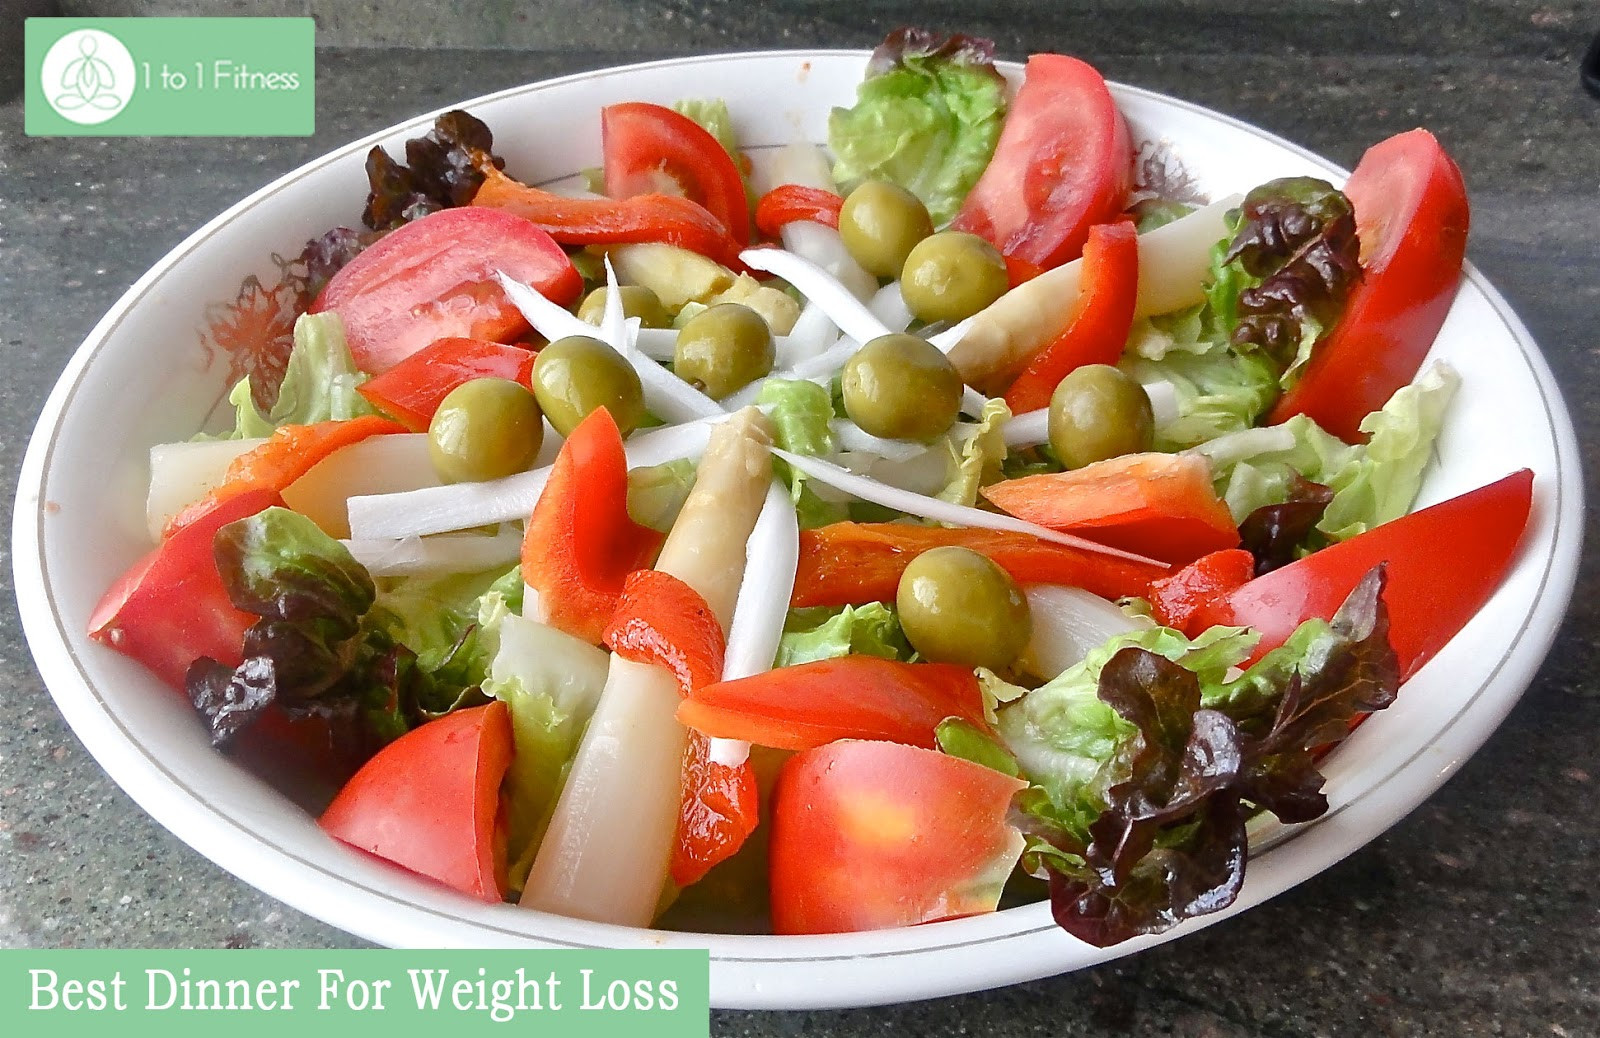 Healthy Salads Recipes  Which Is The Best Diet Plan For Weight Loss 1 to 1 Fitness